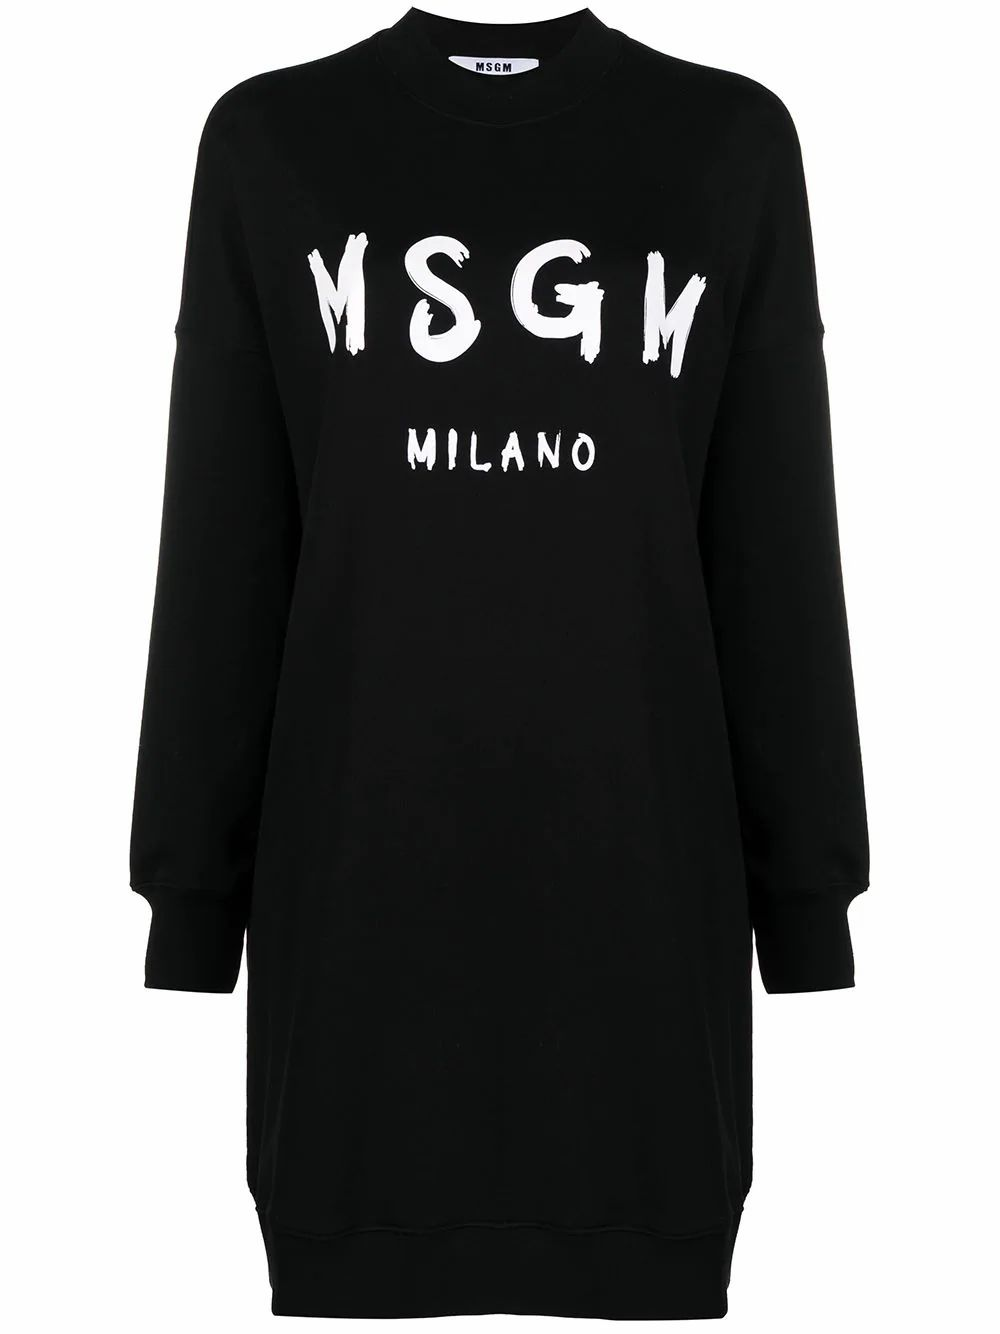 Msgm MSGM WOMEN'S BLACK COTTON DRESS